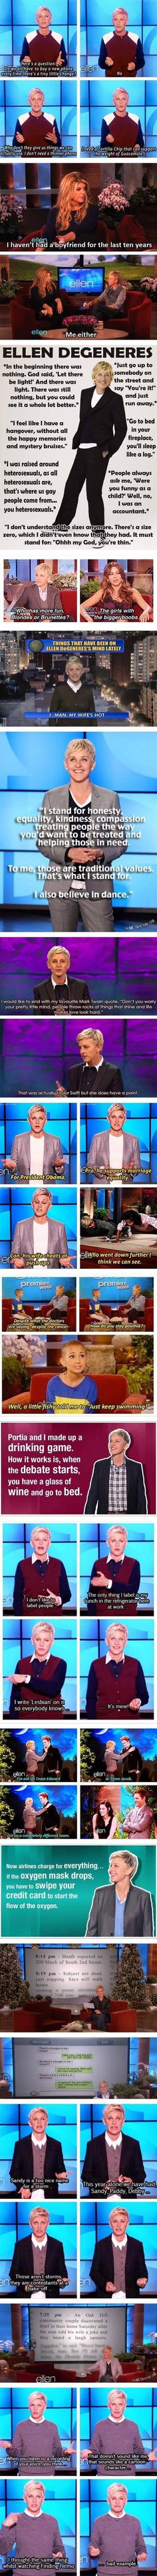 Ellen is too funny! Love the one about the burglar giving himself away because of a joke the husband said LOL